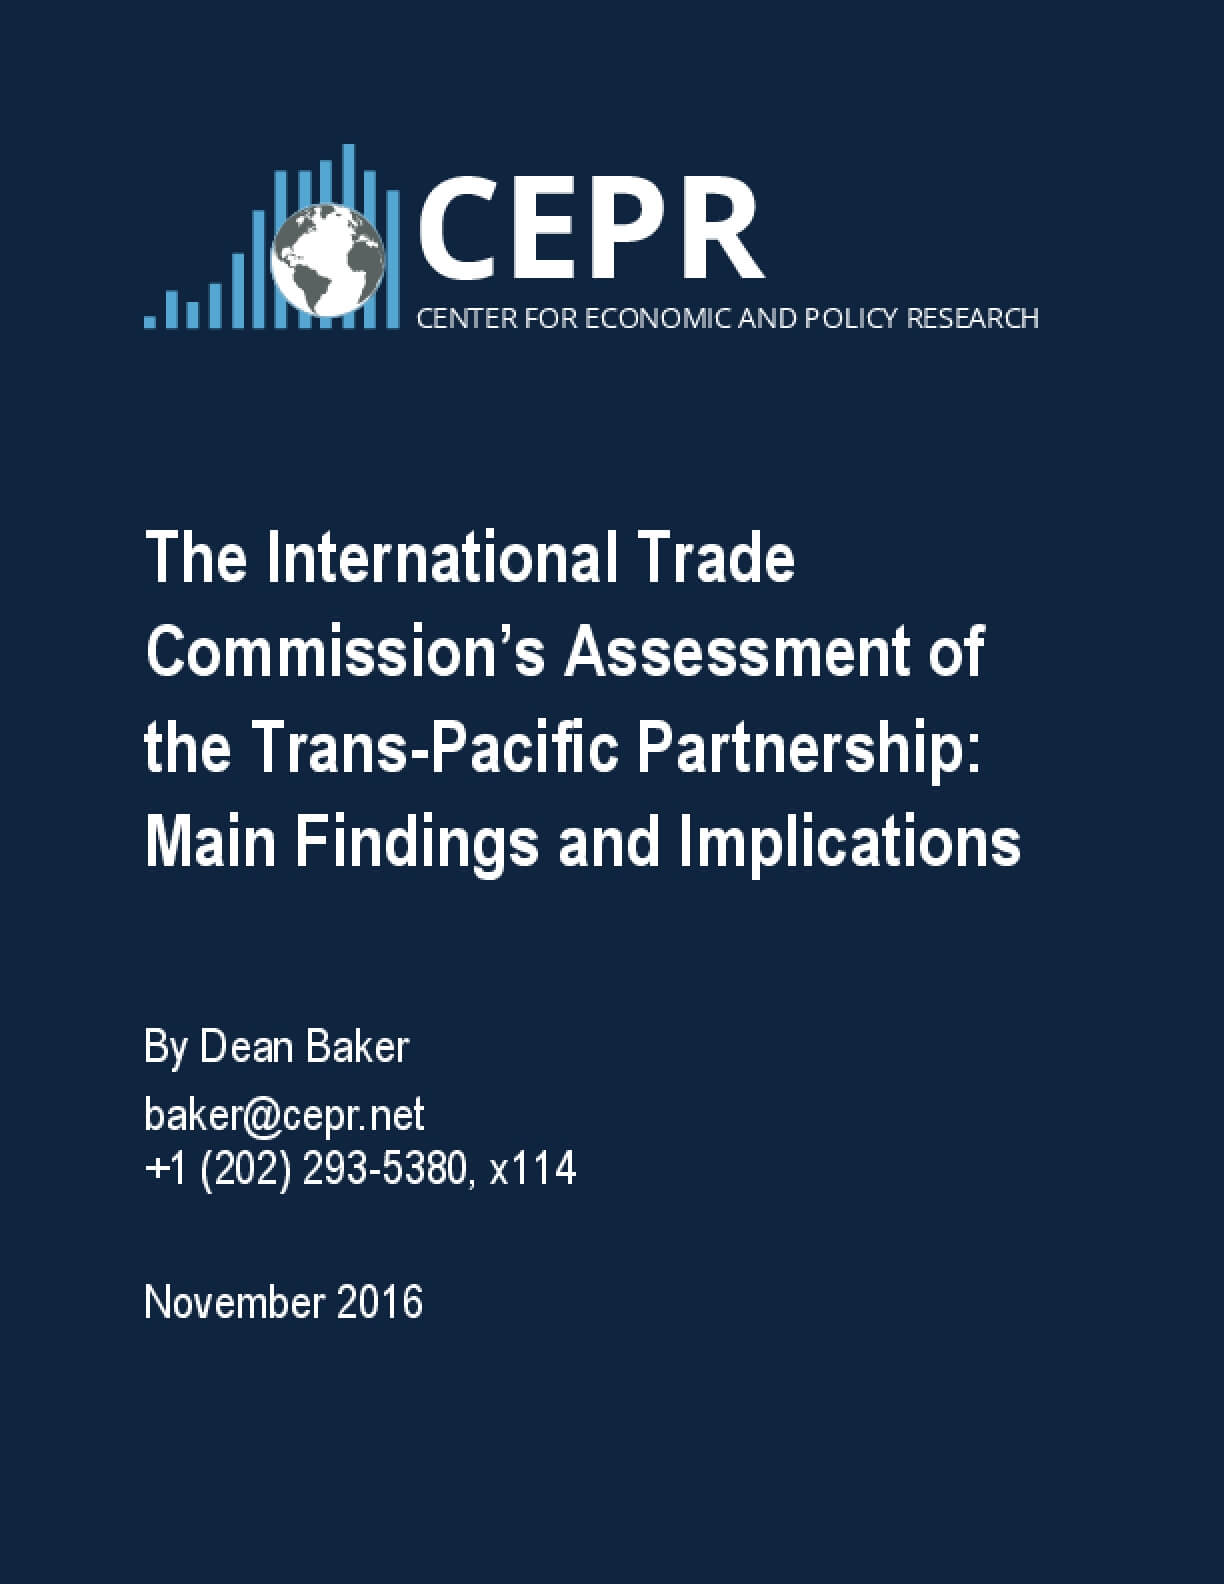 The International Trade Commission's Assessment of the Trans-Pacific Partnership: Main Findings and Implications